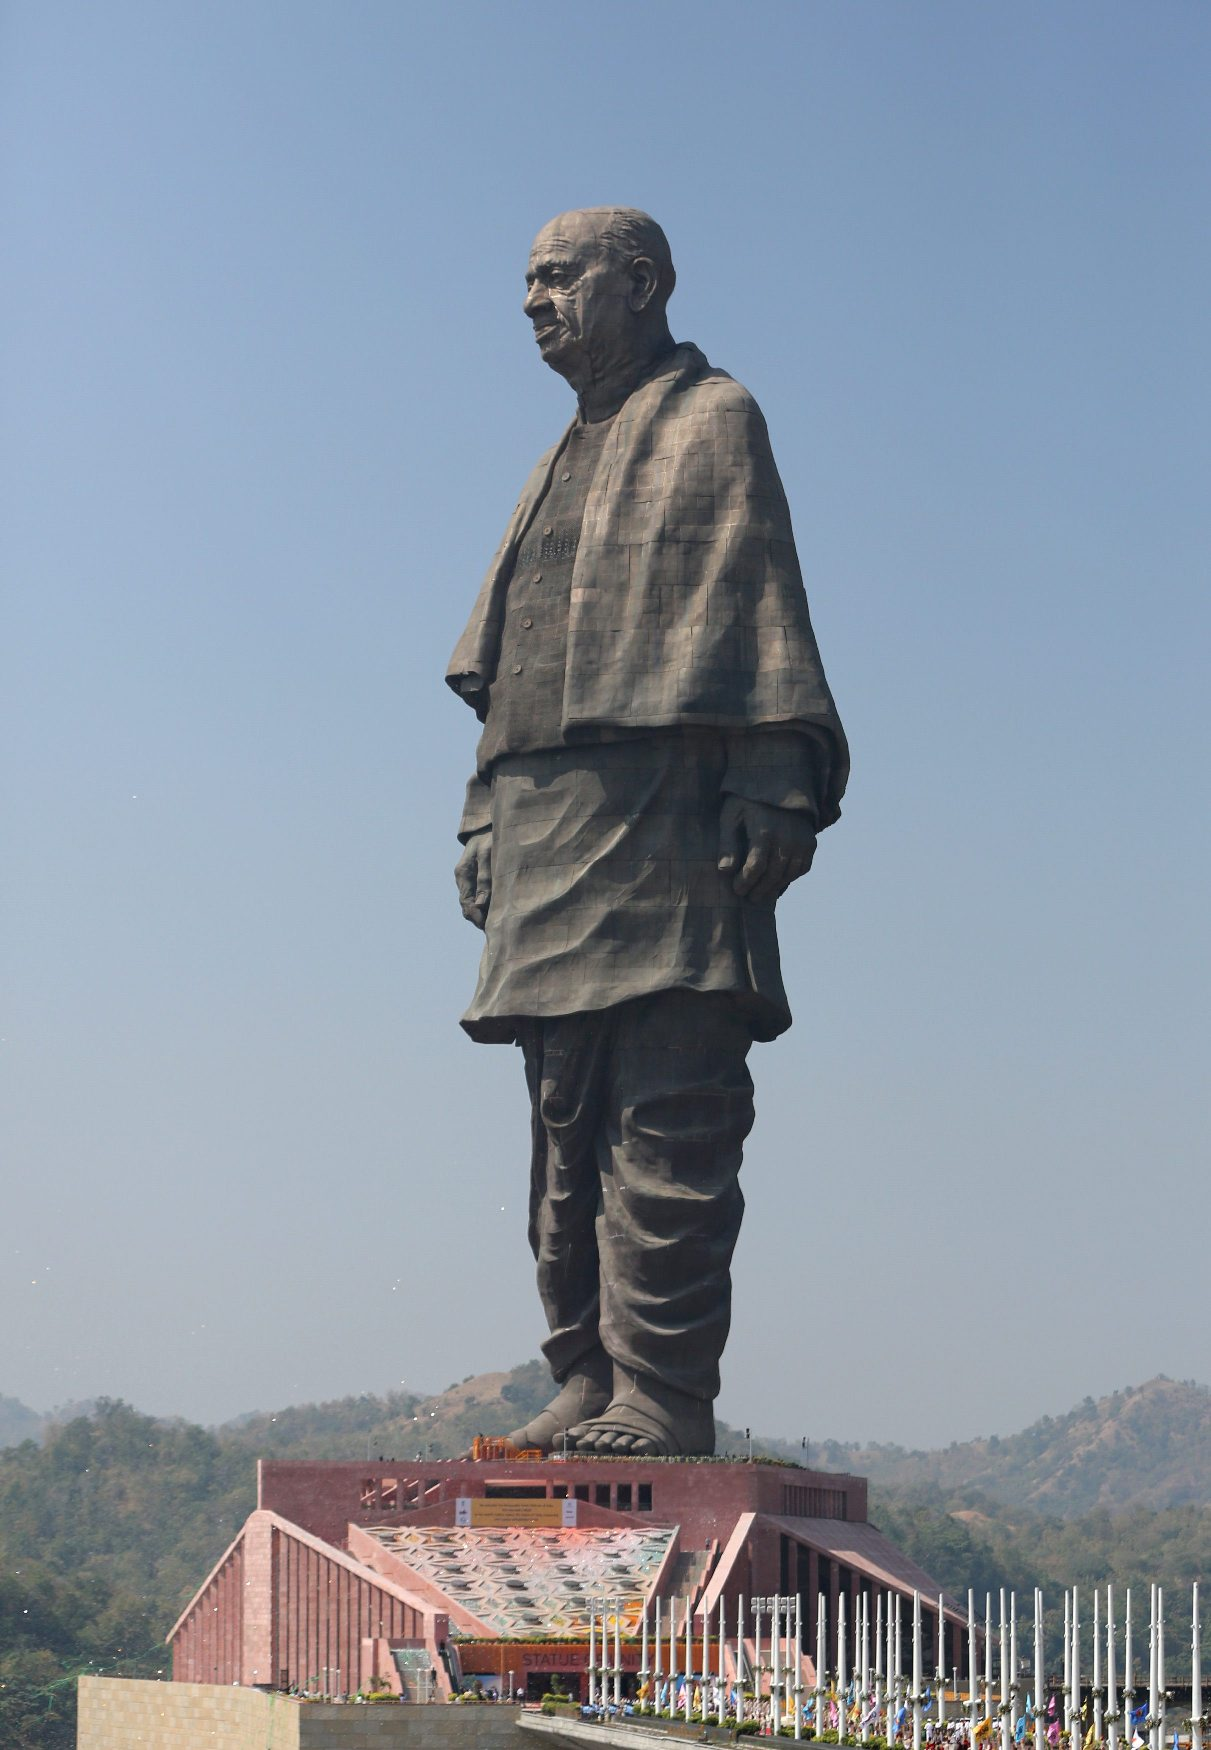 2018-10-31T072309Z_398508734_RC130EF40210_RTRMADP_3_INDIA-STATUE